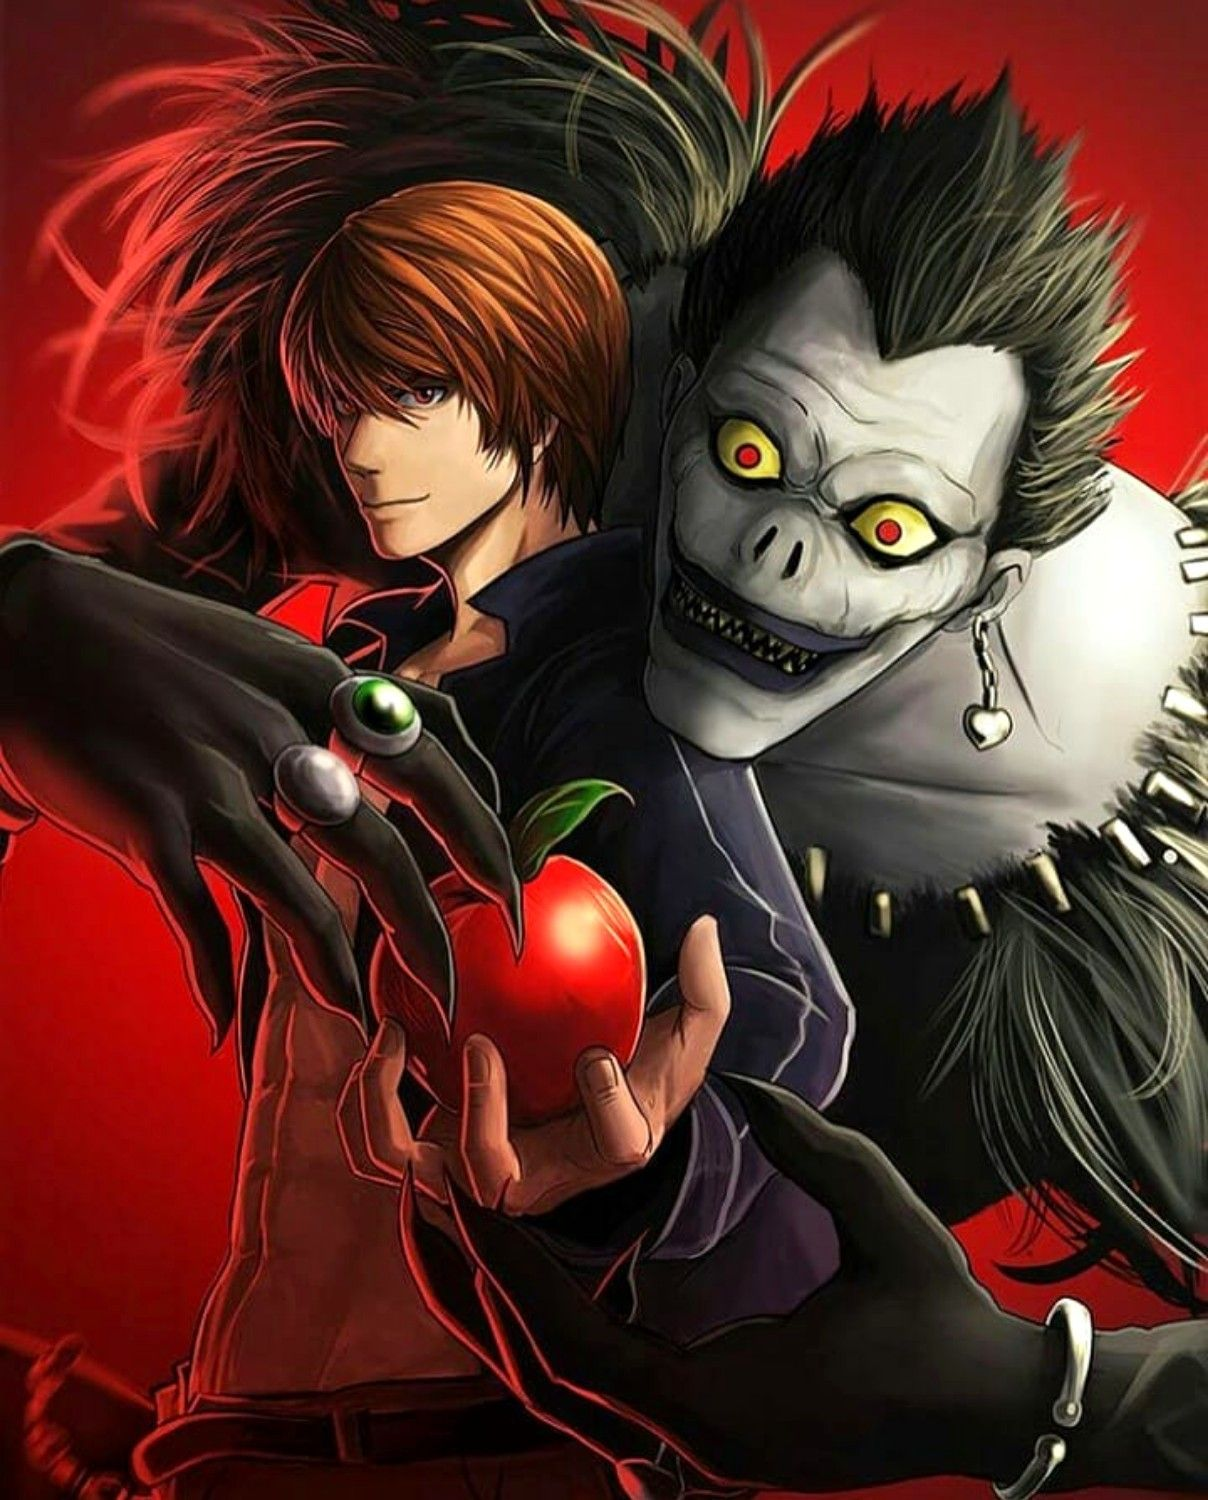 Light Yagami Ryuk Personagens de anime, Anime, Filmes